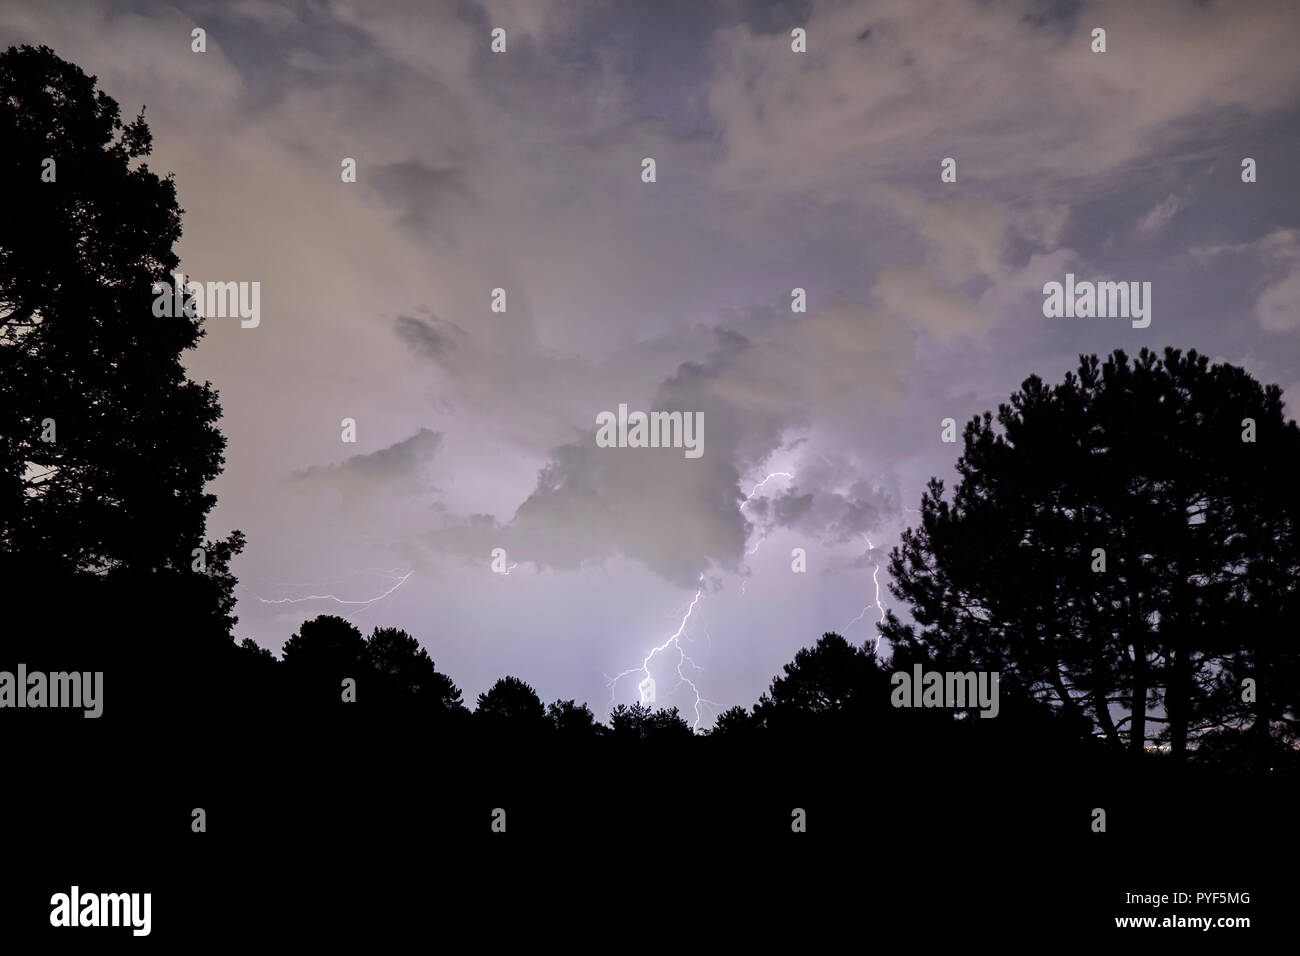 Thunderstorm in the night of the lunar eclipse 2018 - Stock Image